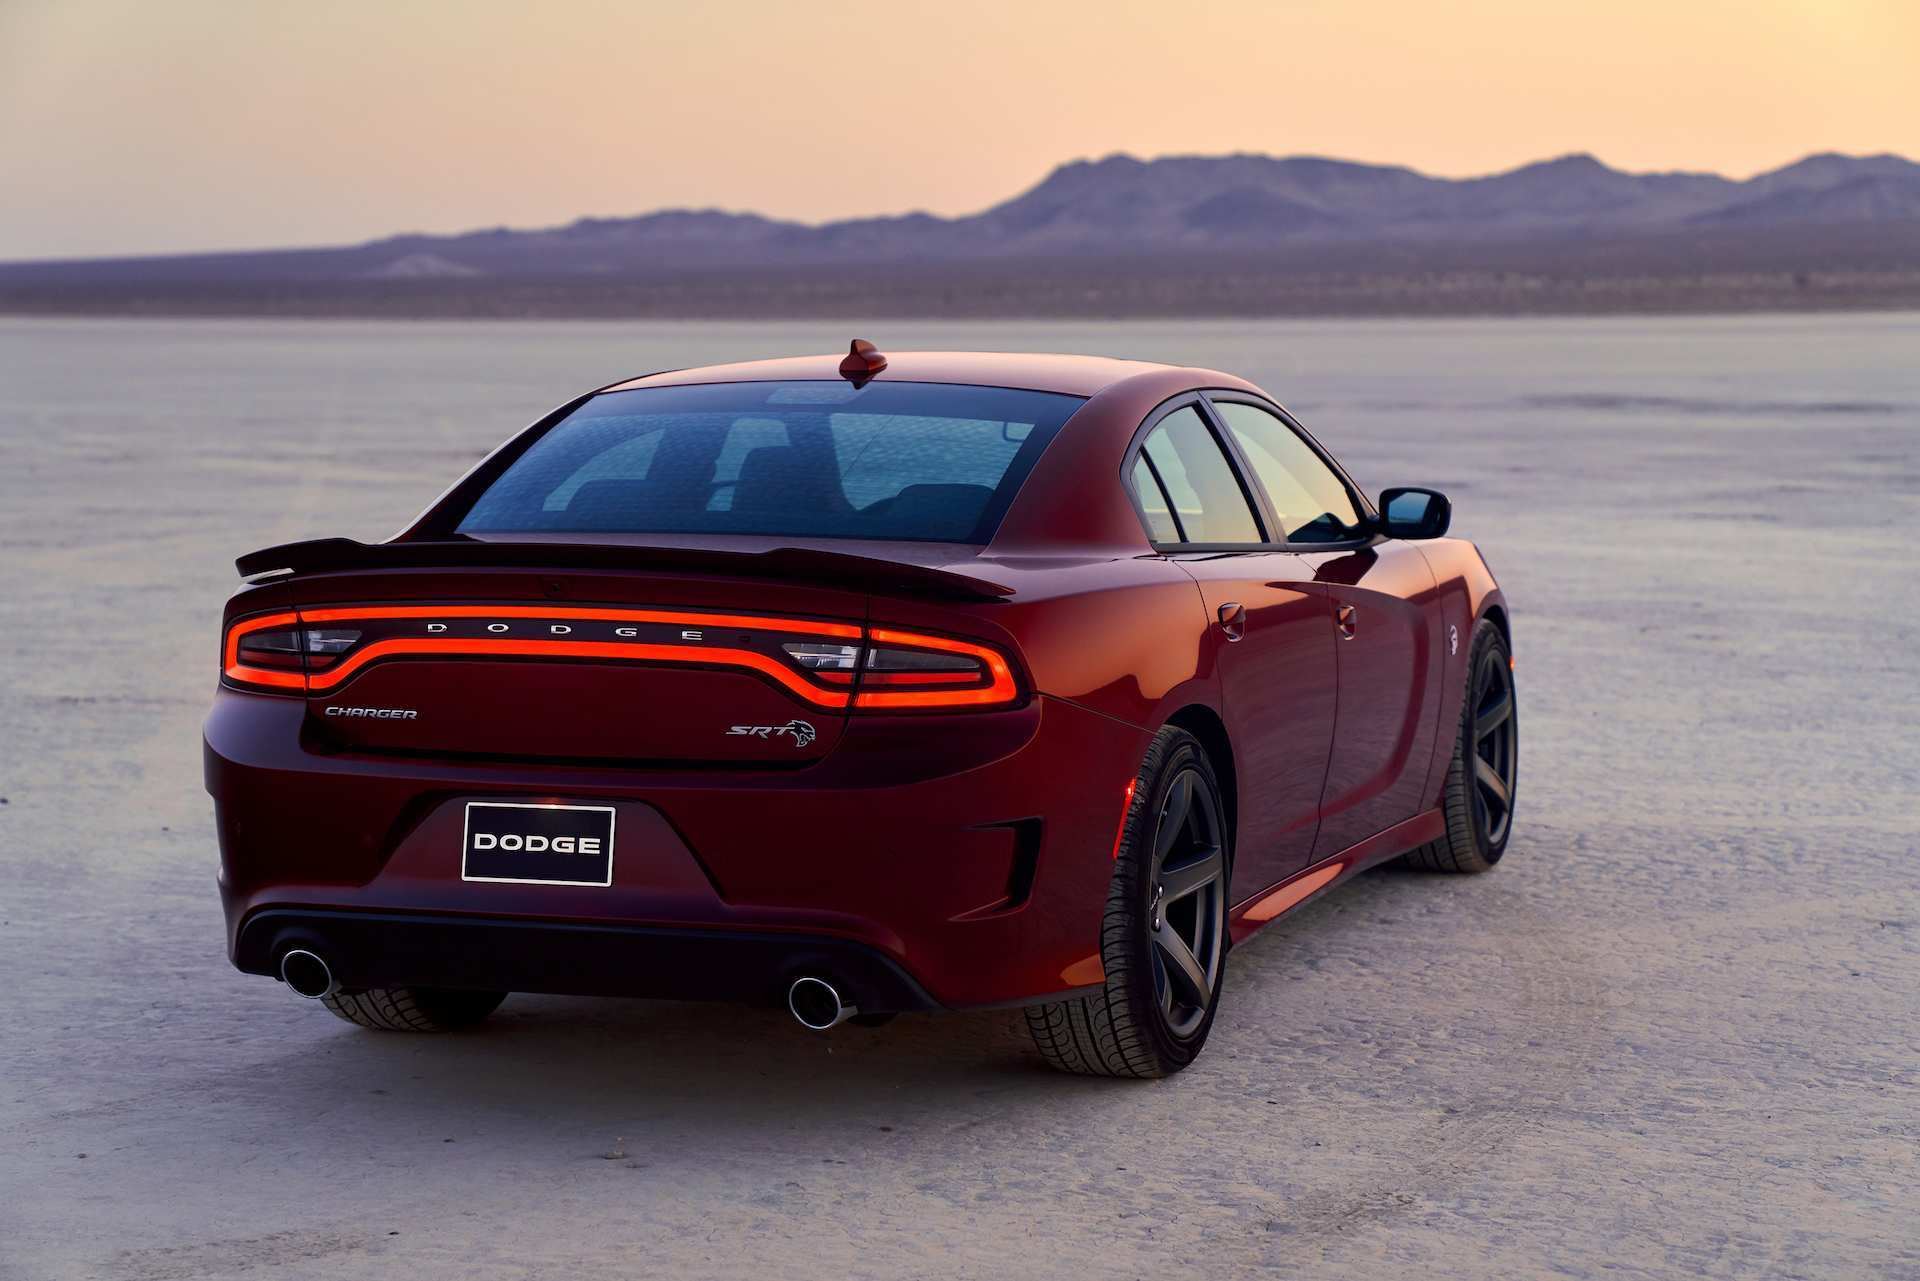 96 Best Review What Will The 2020 Dodge Charger Look Like Pictures with What Will The 2020 Dodge Charger Look Like